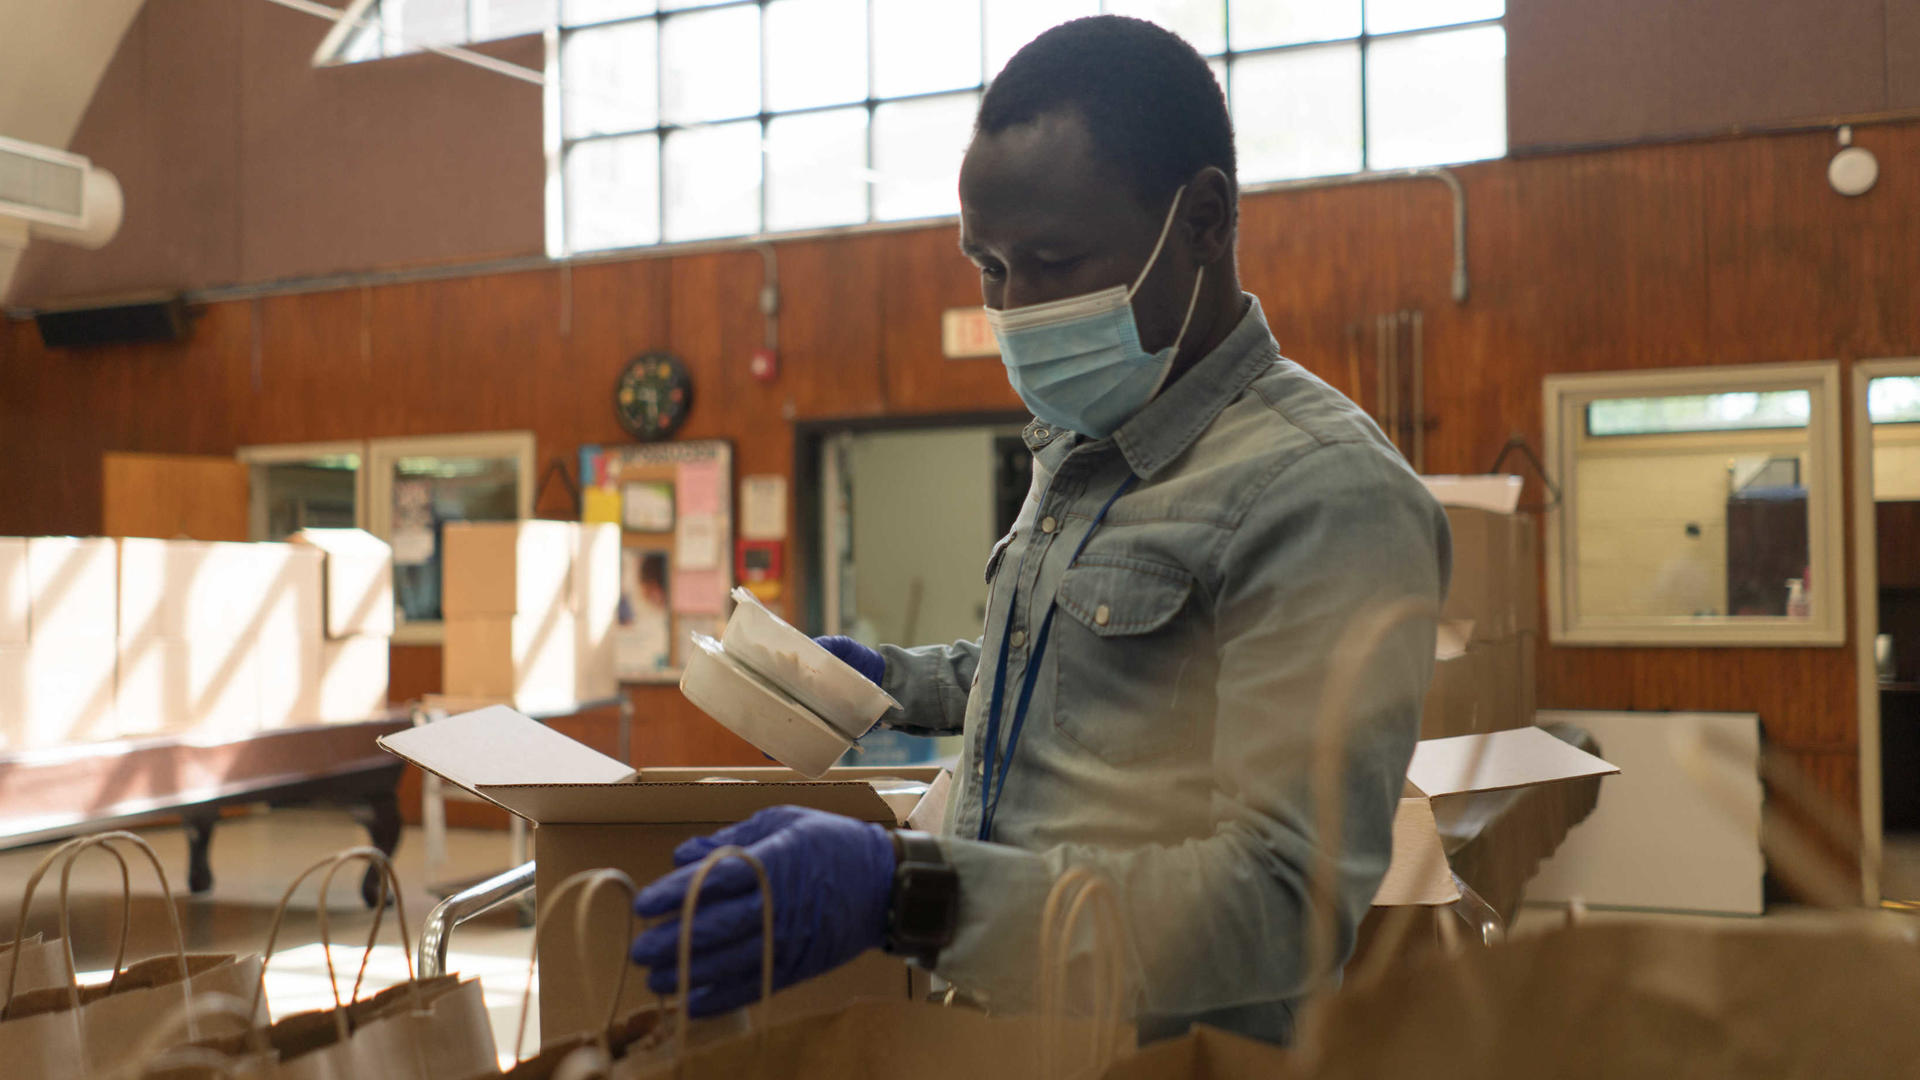 Adam Abakar, a refugee originally from Sudan, works in a food distribution center run by the IRC and World Central Kitchen. He is wearing a mask and gloves, and is putting food into paper bags.